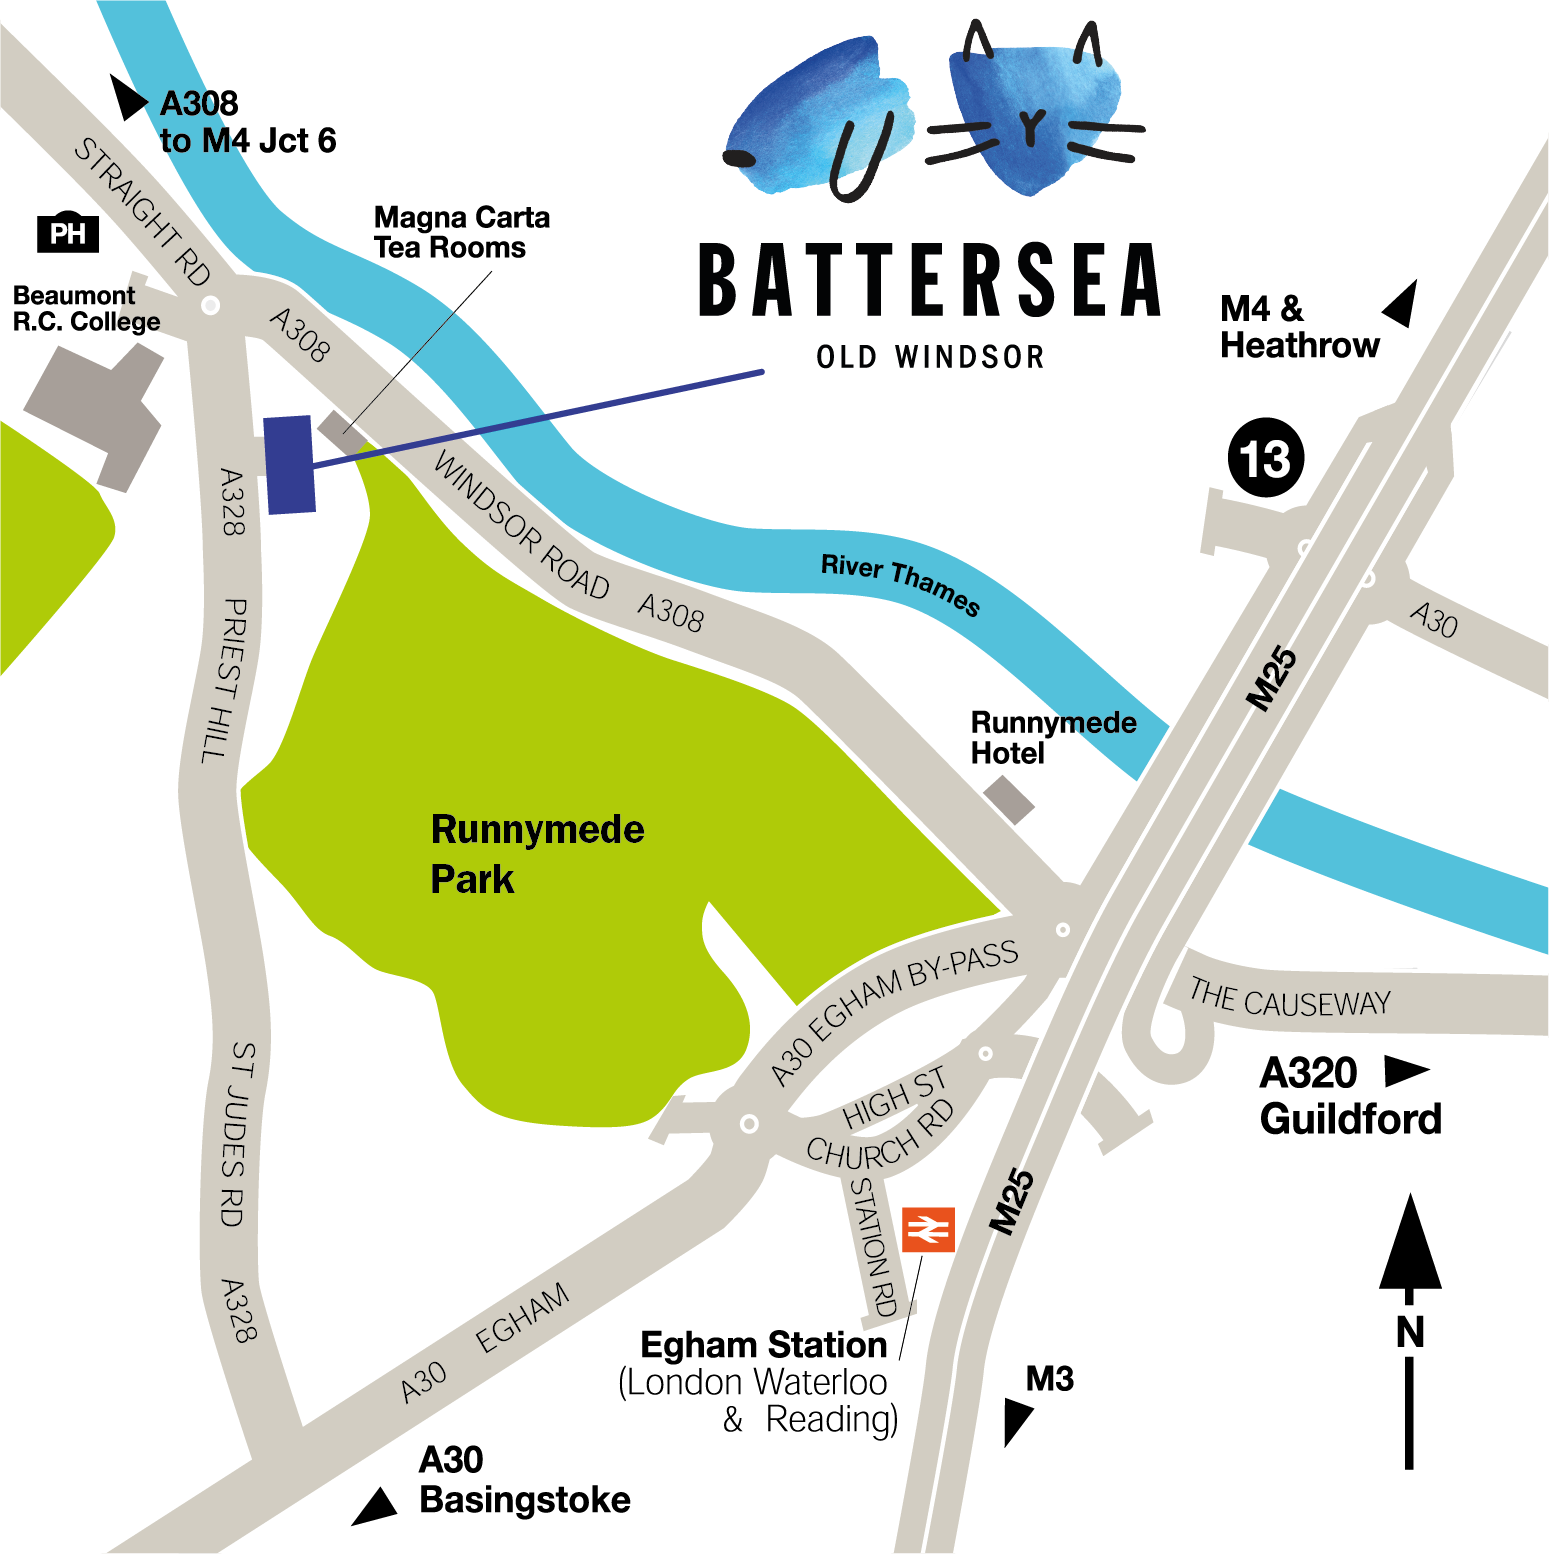 Map showing the location and how to access Battersea Old Windsor